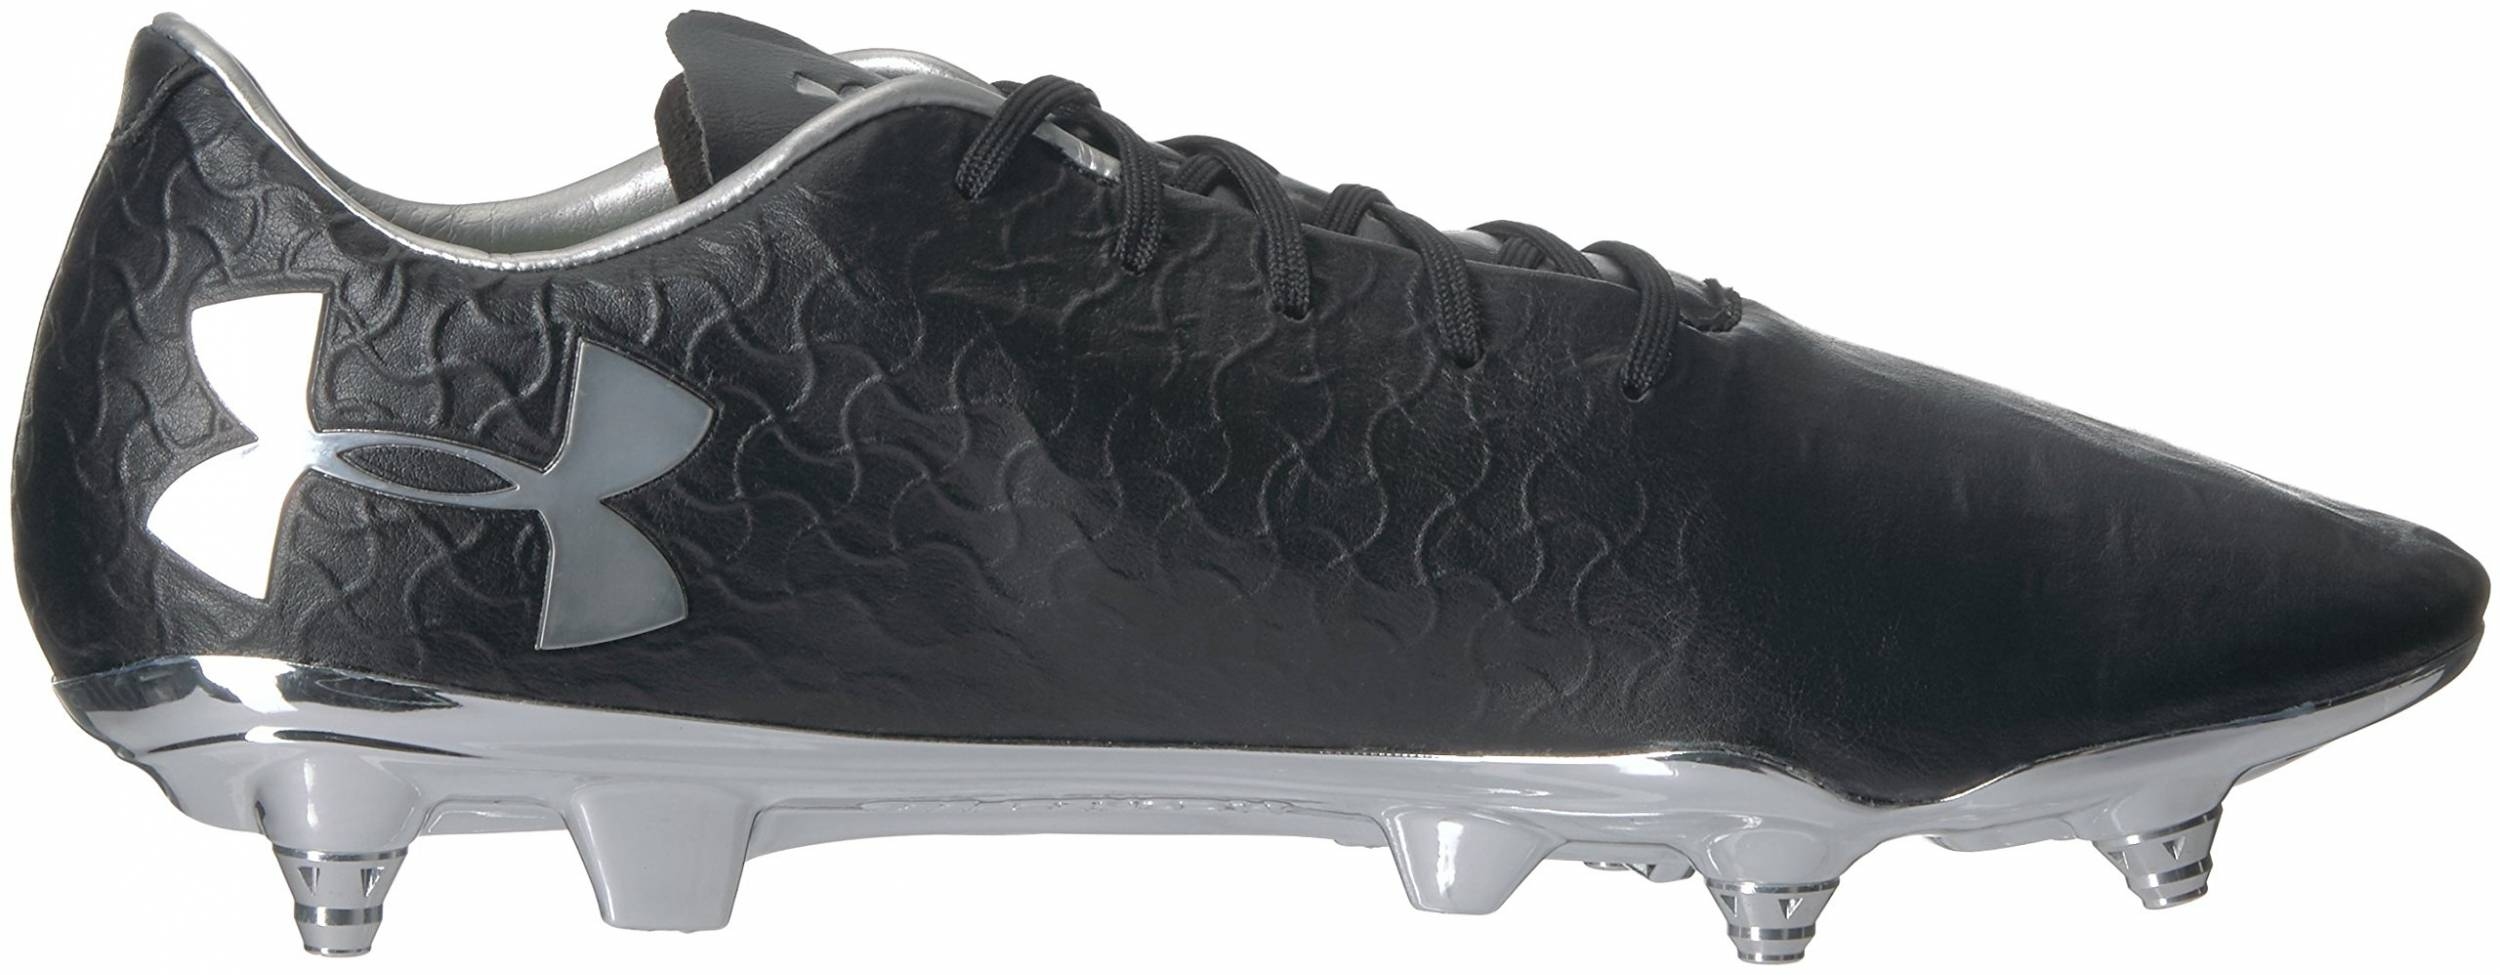 Under Armour Magnetico Pro Hybrid